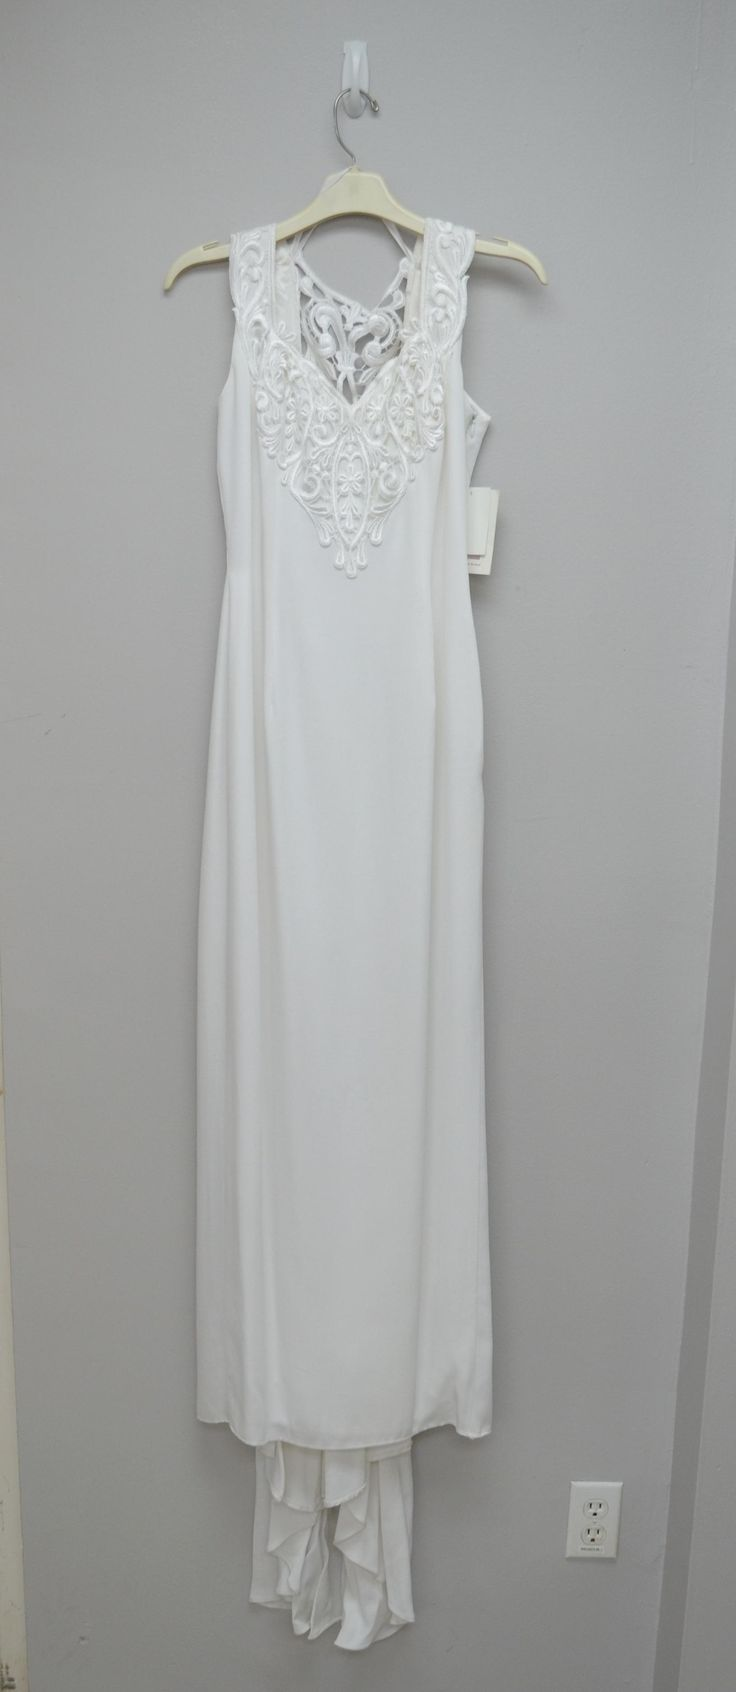 Jessica McClintock Jessica Mcclintock Wedding Dress. Jessica McClintock Jessica Mcclintock Wedding Dress on Tradesy Weddings (formerly Recycled Bride), the world's largest wedding marketplace. Price $229.00...Could You Get it For Less? Click Now to Find Out!